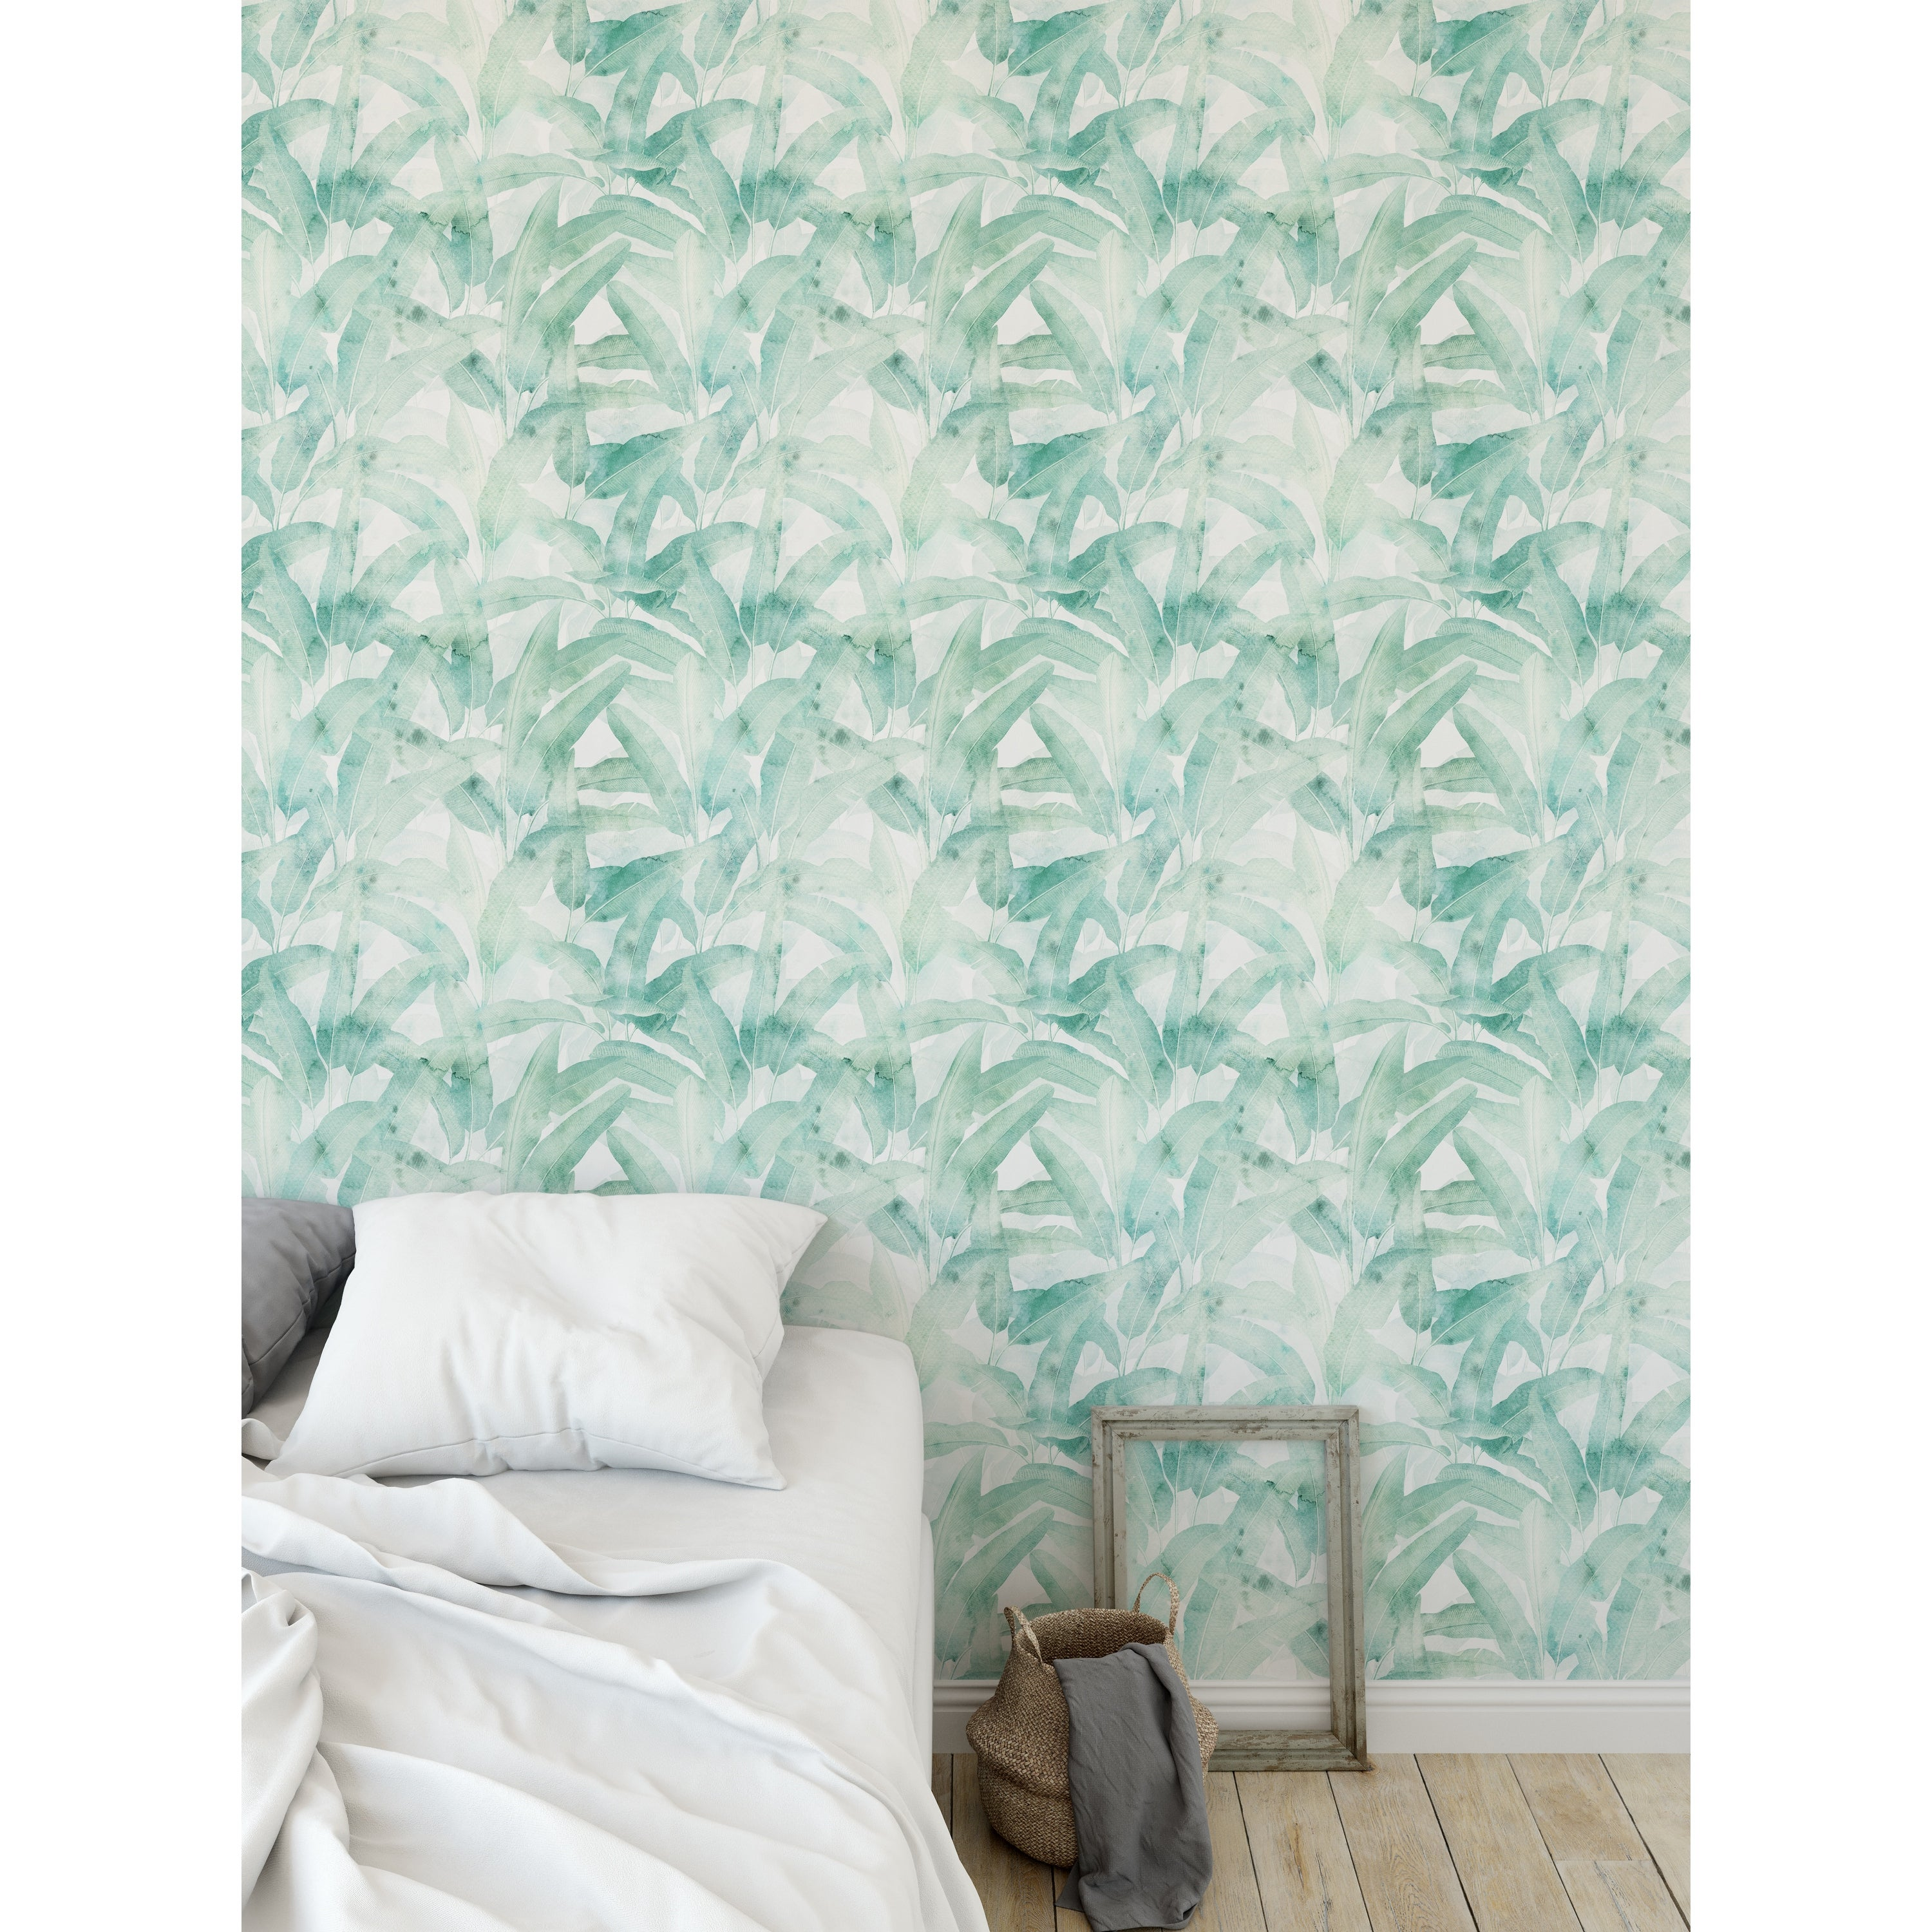 Shop Musa Aqua Green Peel And Stick Wallpaper By Kavka Designs 2 X 16 On Sale Overstock 31637979